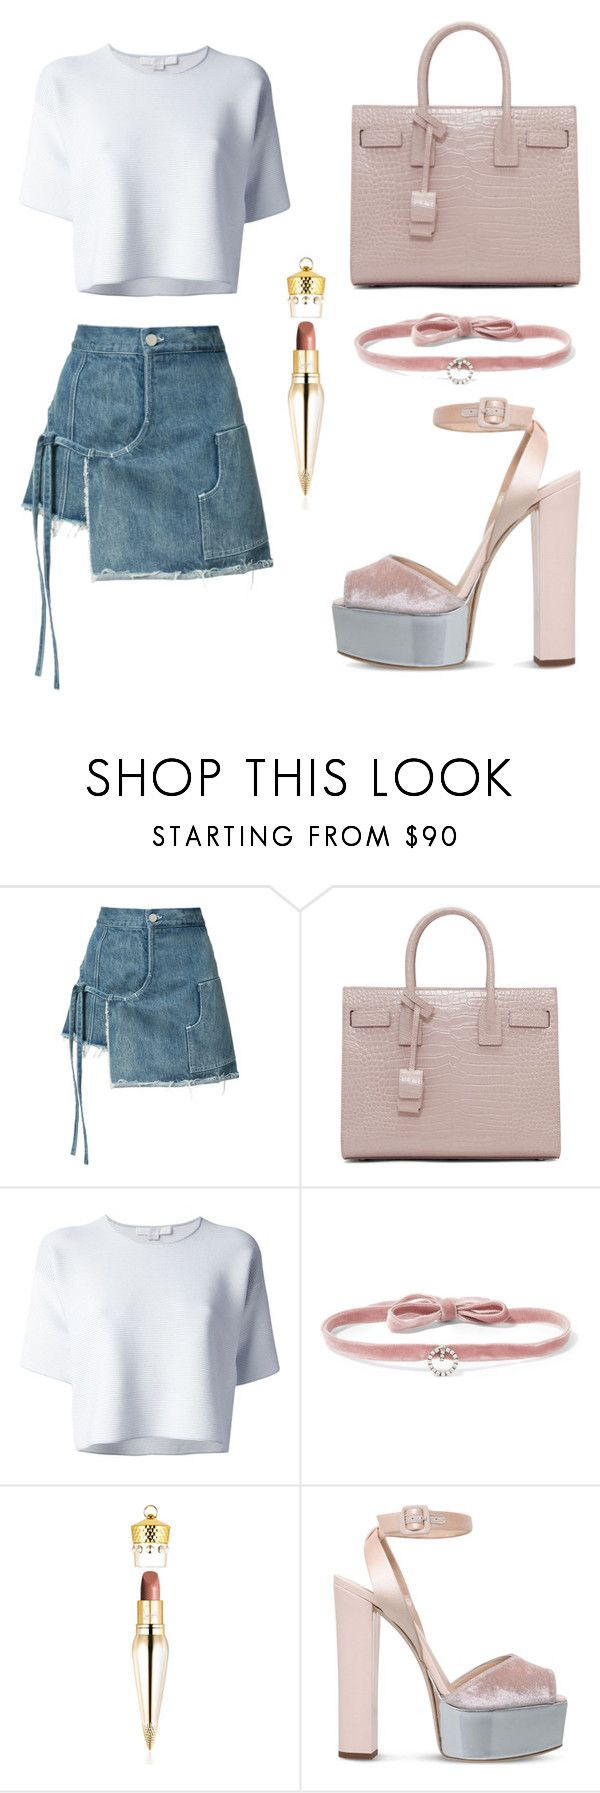 """""""Untitled #311"""" by cxndai ❤ liked on Polyvore featuring Sandy Liang, Yves Saint Laurent, Alexander Wang, DANNIJO, Christian Louboutin and Giuseppe Zanotti"""